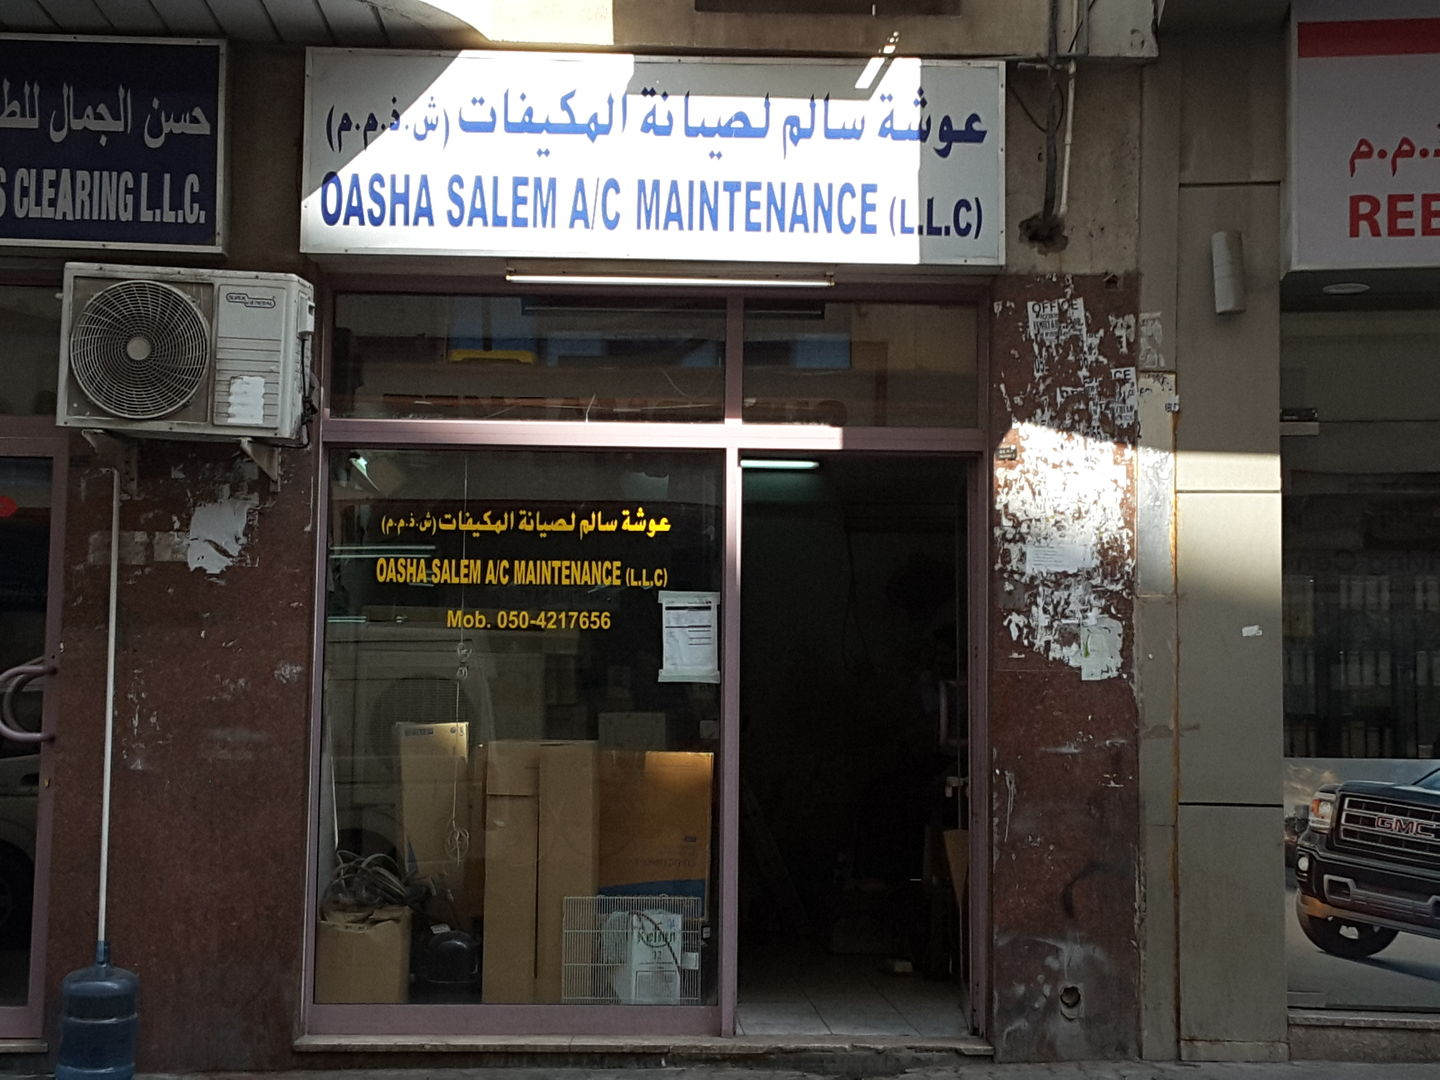 Walif-business-oasha-salem-a-c-maintenence